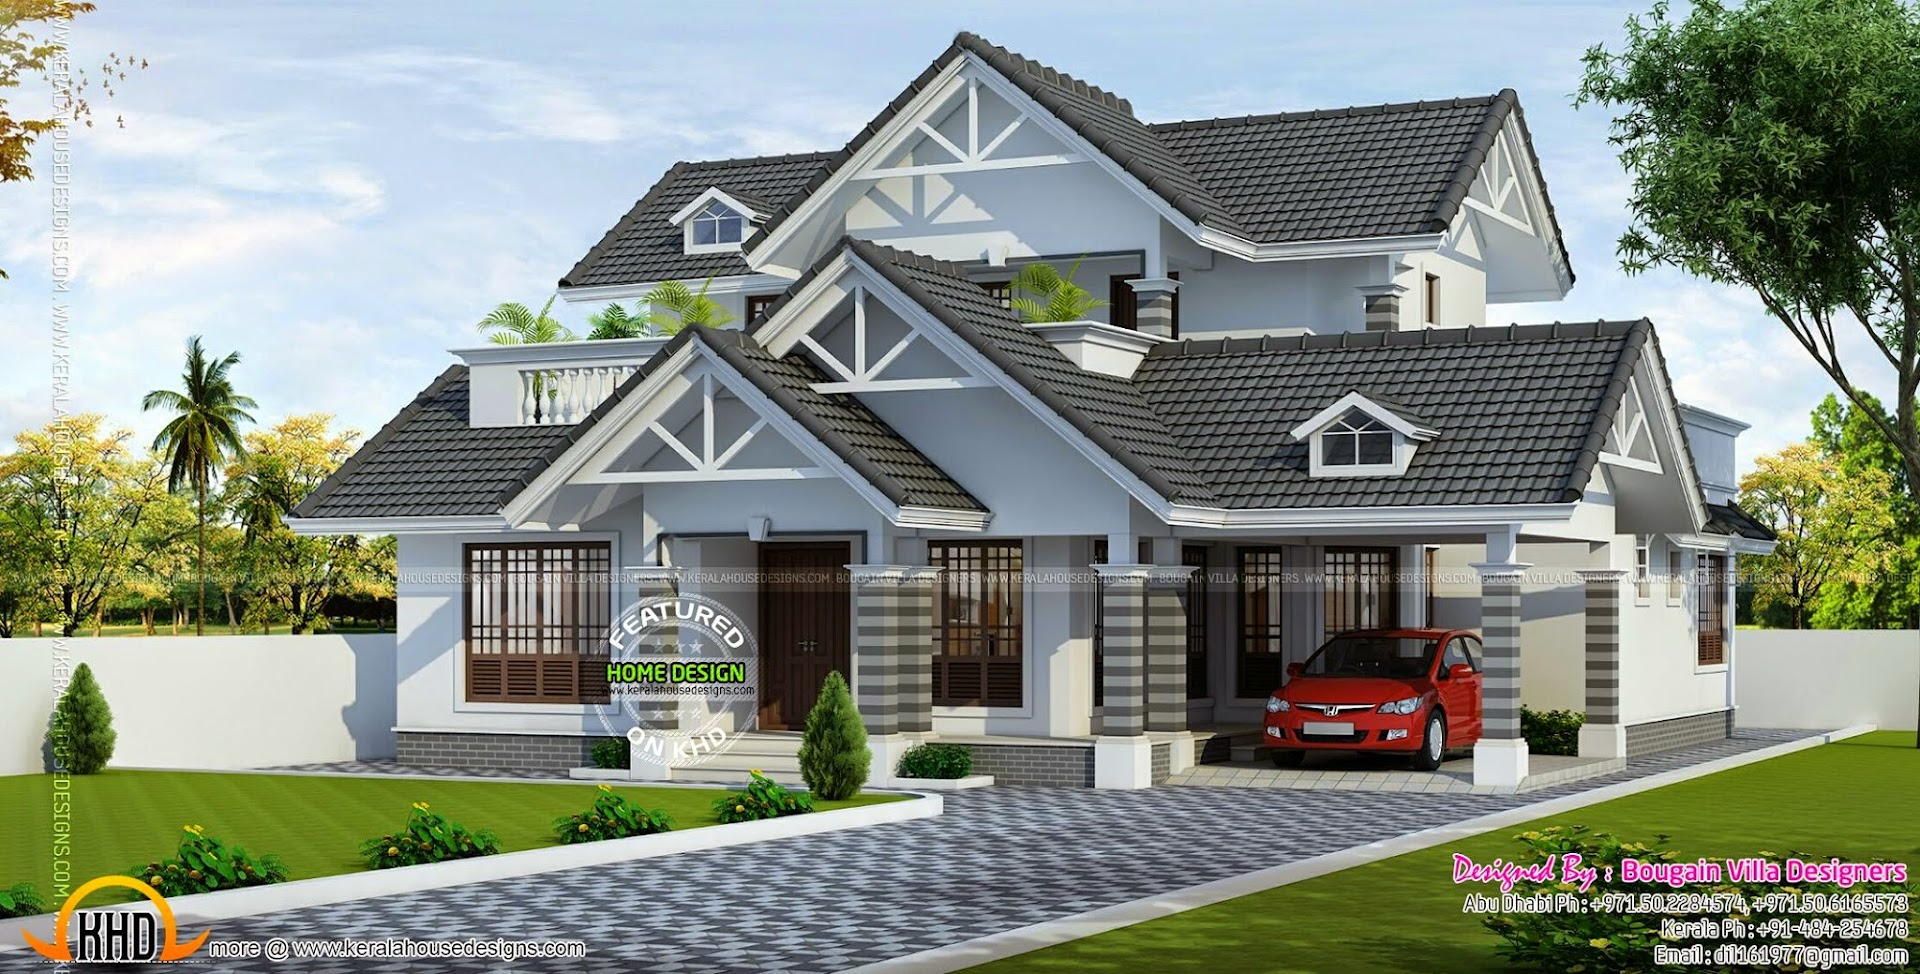 2480 square feet elegant home design kerala kerala home for Sloped roof house plans in india